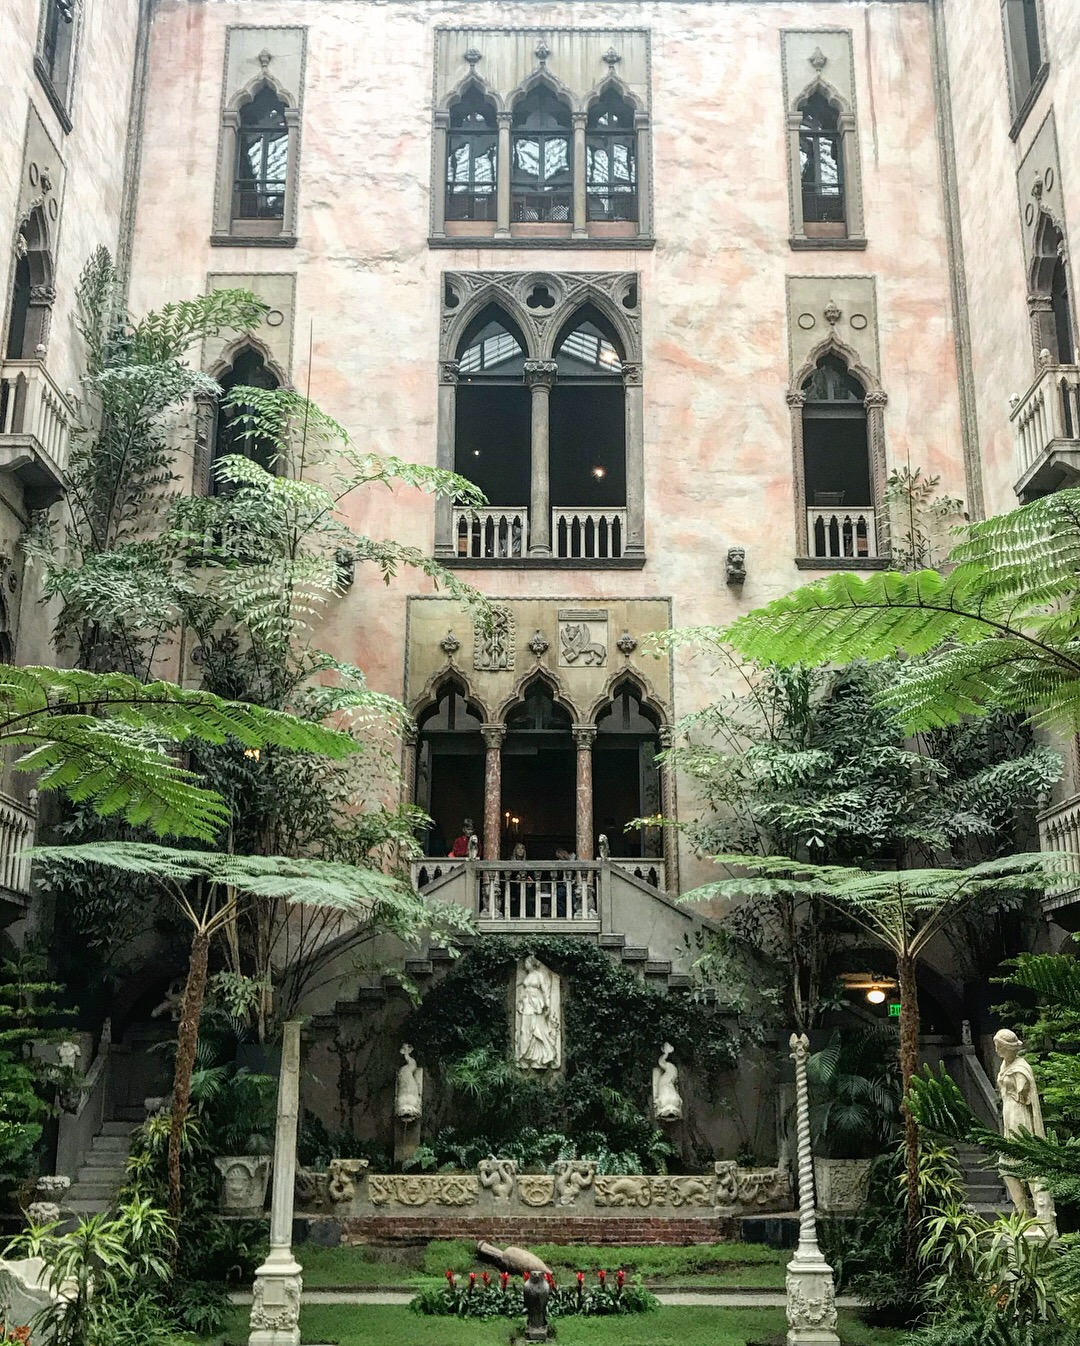 Isabella Stewart Gardner interior Venetian inspired arboretum and courtyard, LGD Team (Crystina Castiglione Photography).